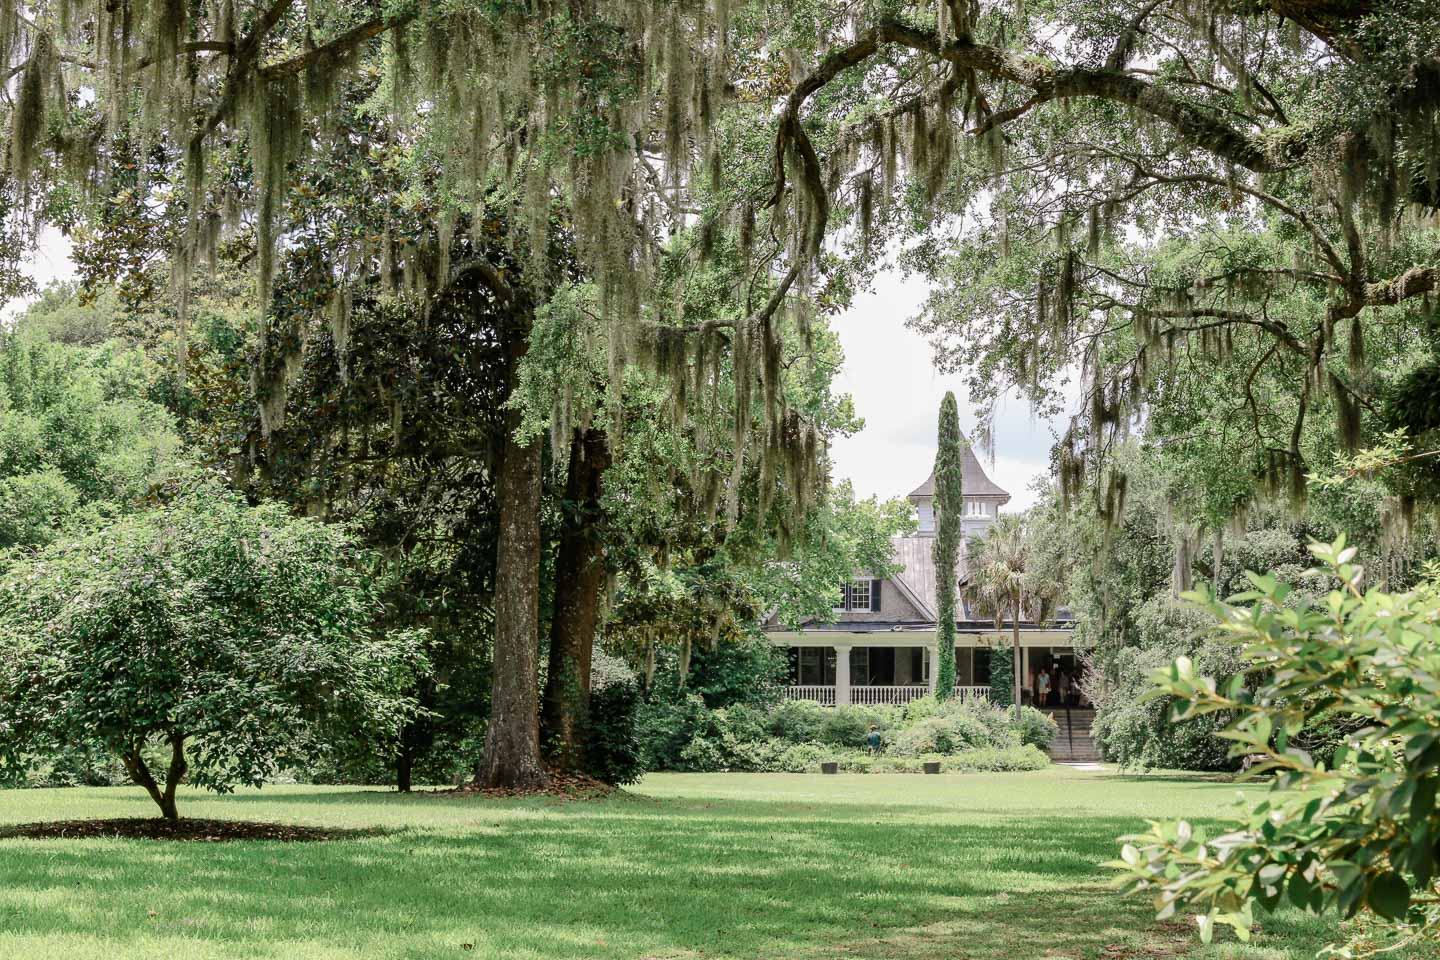 A house surrounded by trees draped in Spanish moss.